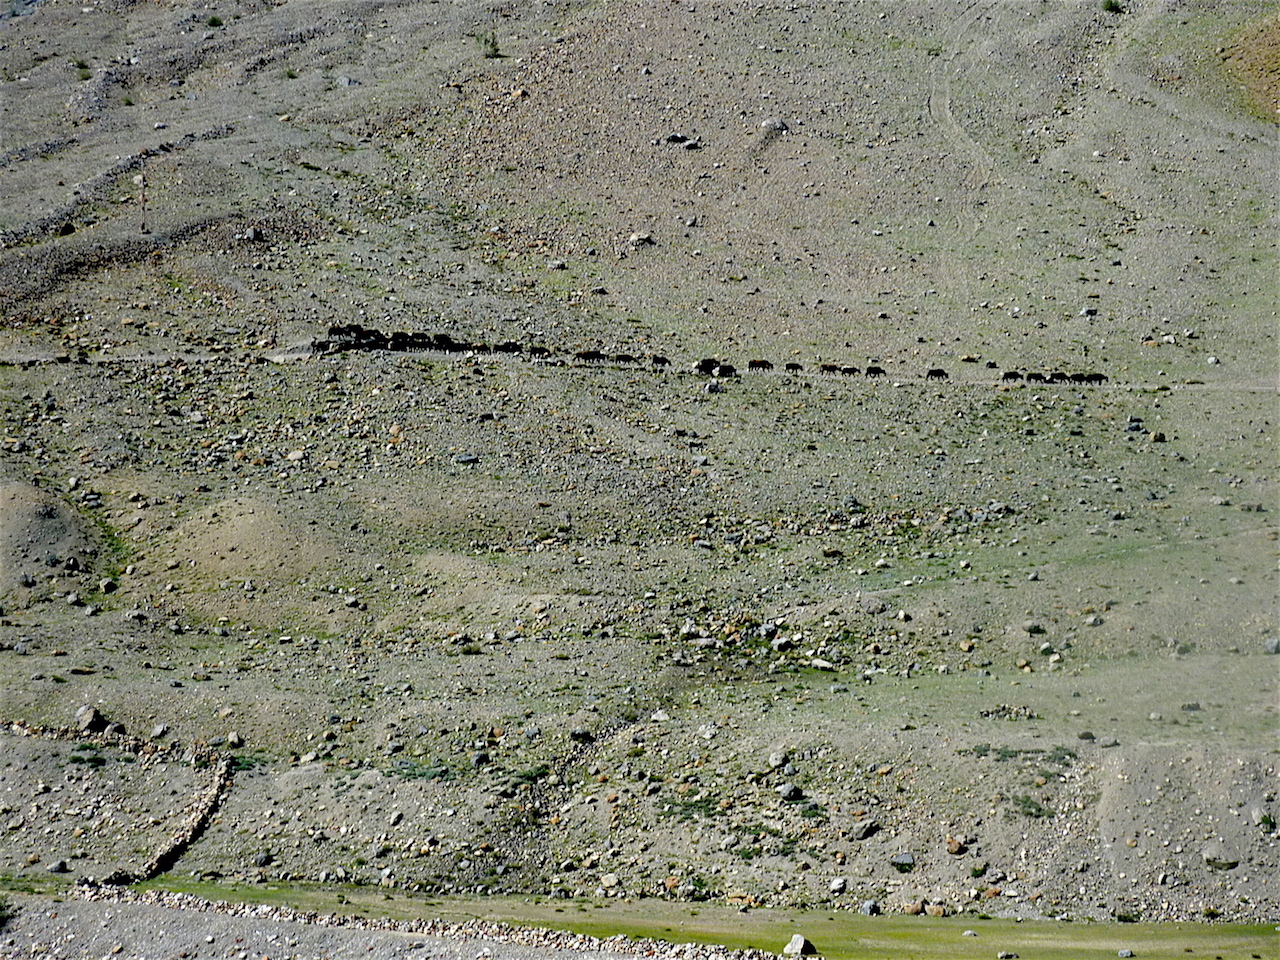 The Gaddis and their sheep and goats are a common sight in the summer months in this harsh landscape.